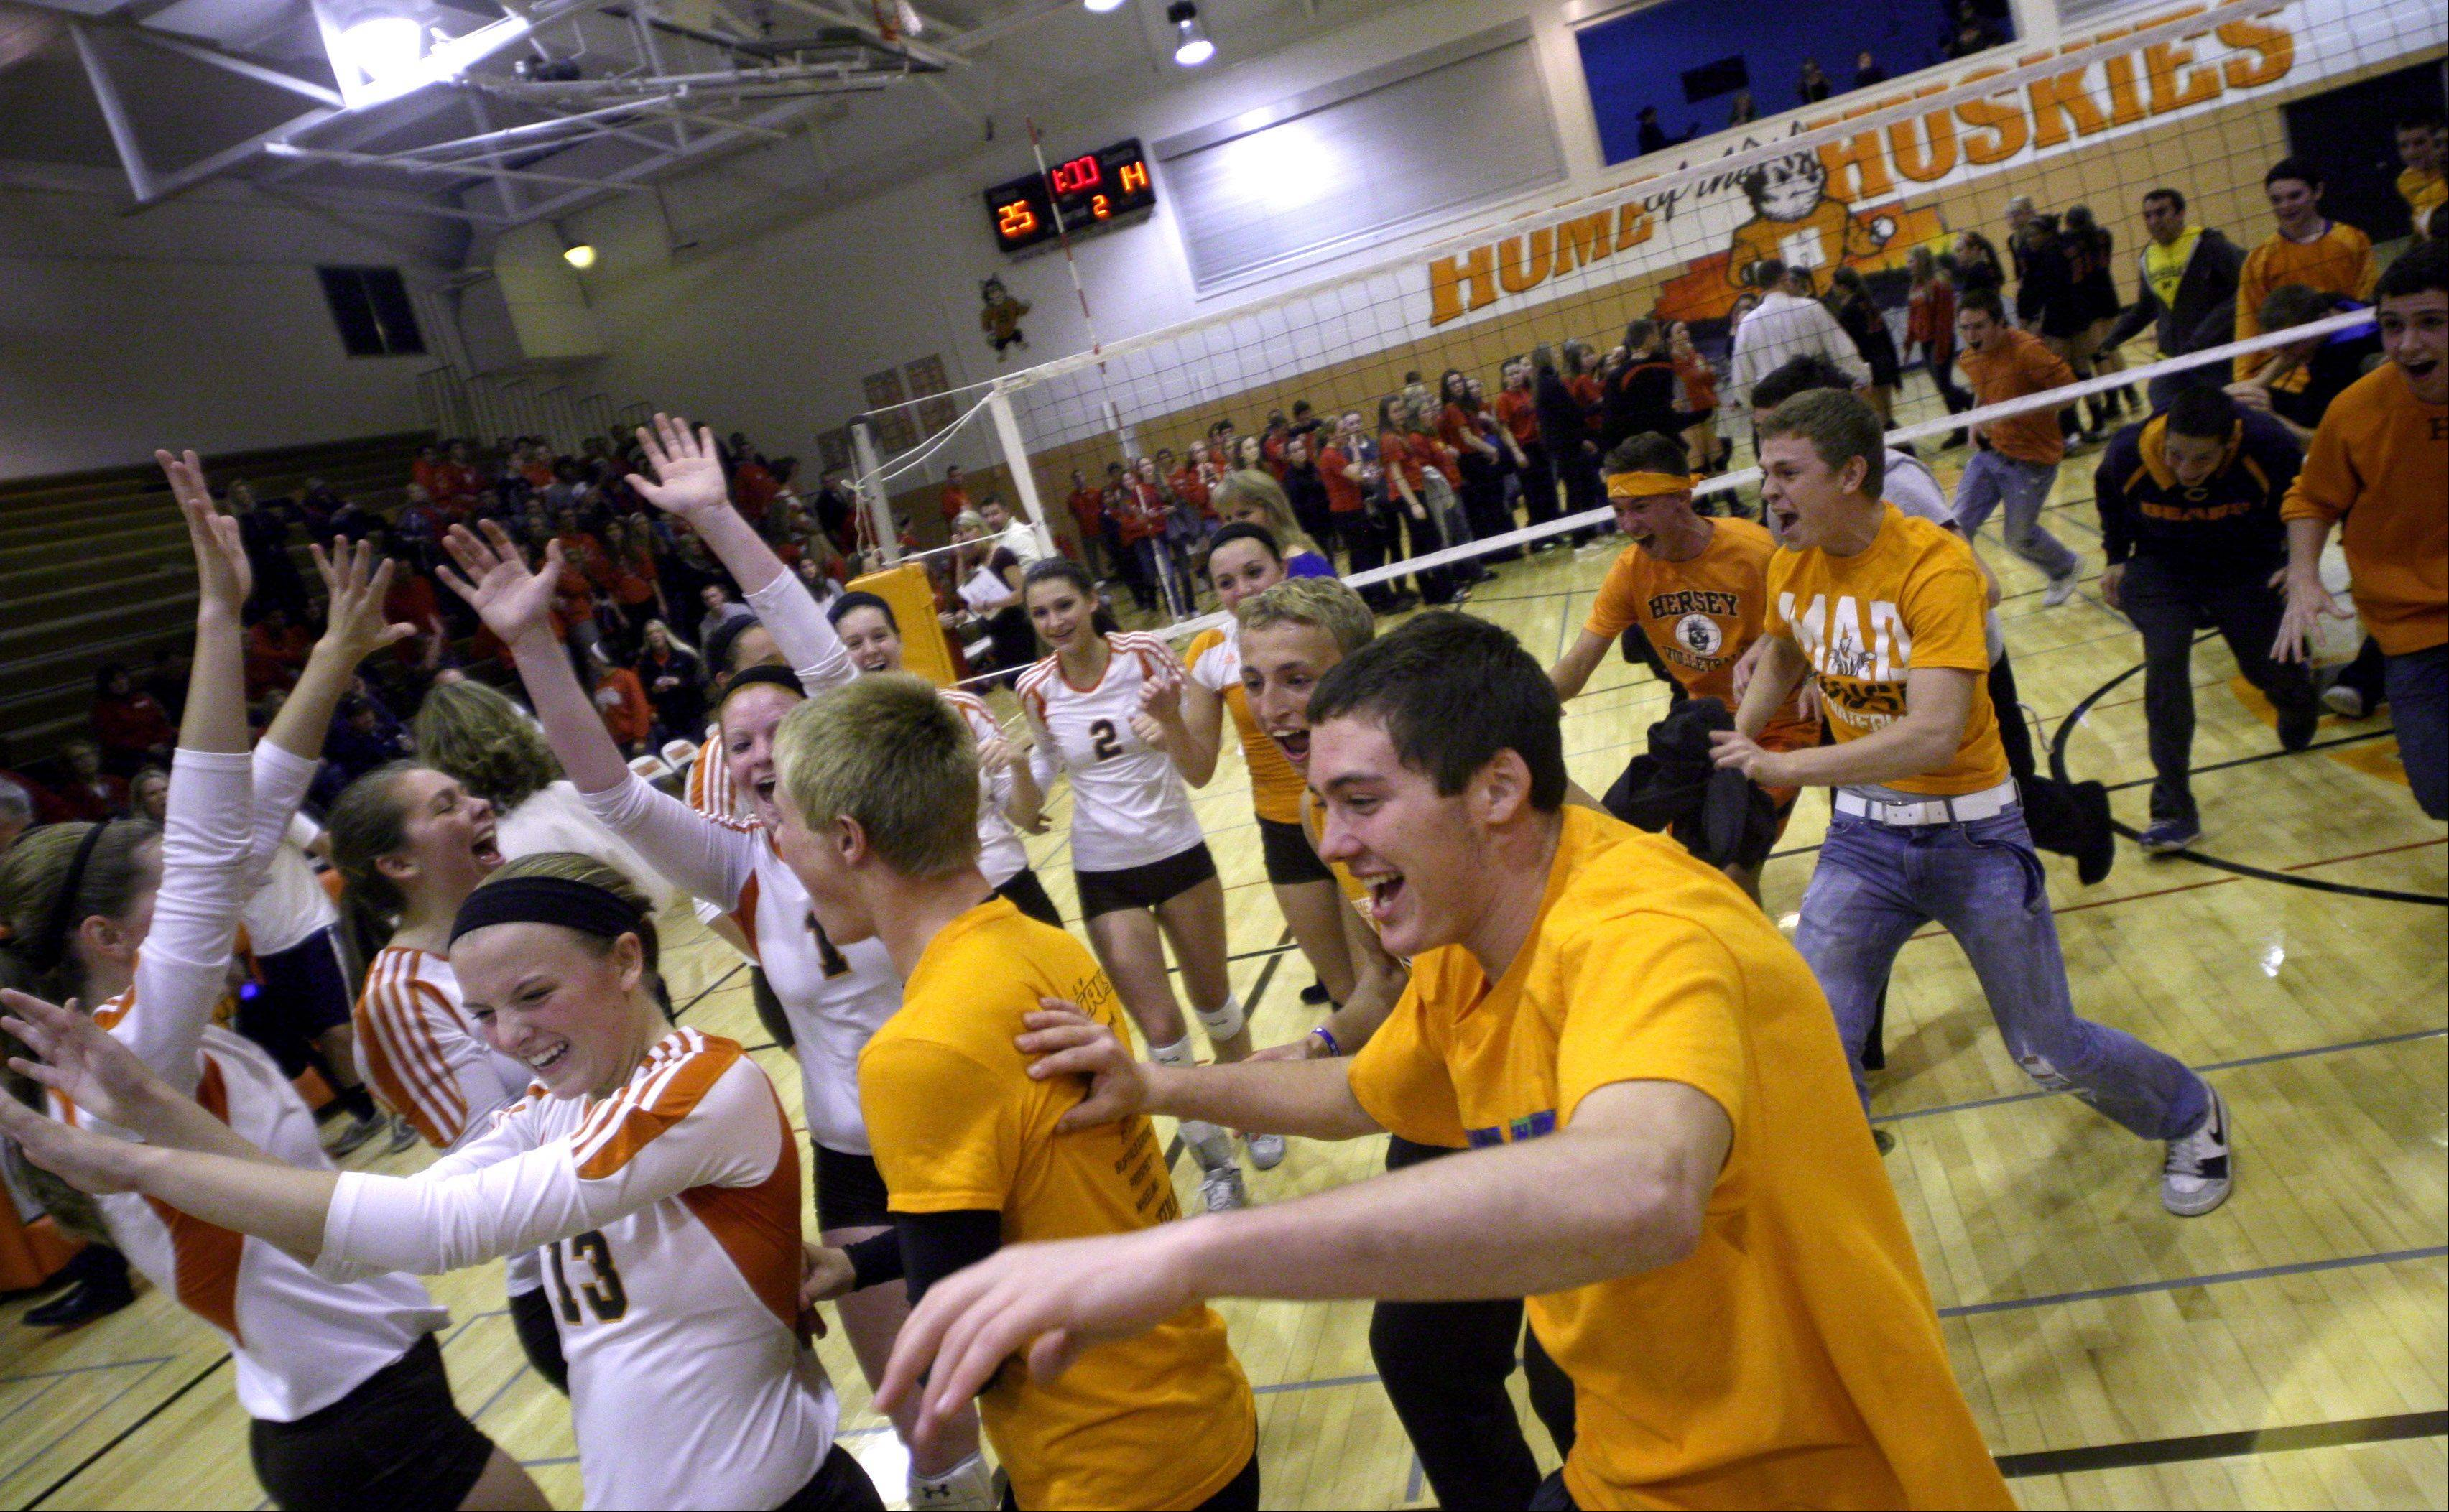 Hersey's fans mob their team after the Huskies defeated Palatine in the Mid-Suburban League championship volleyball game in Arlington Heights on Thursday night.